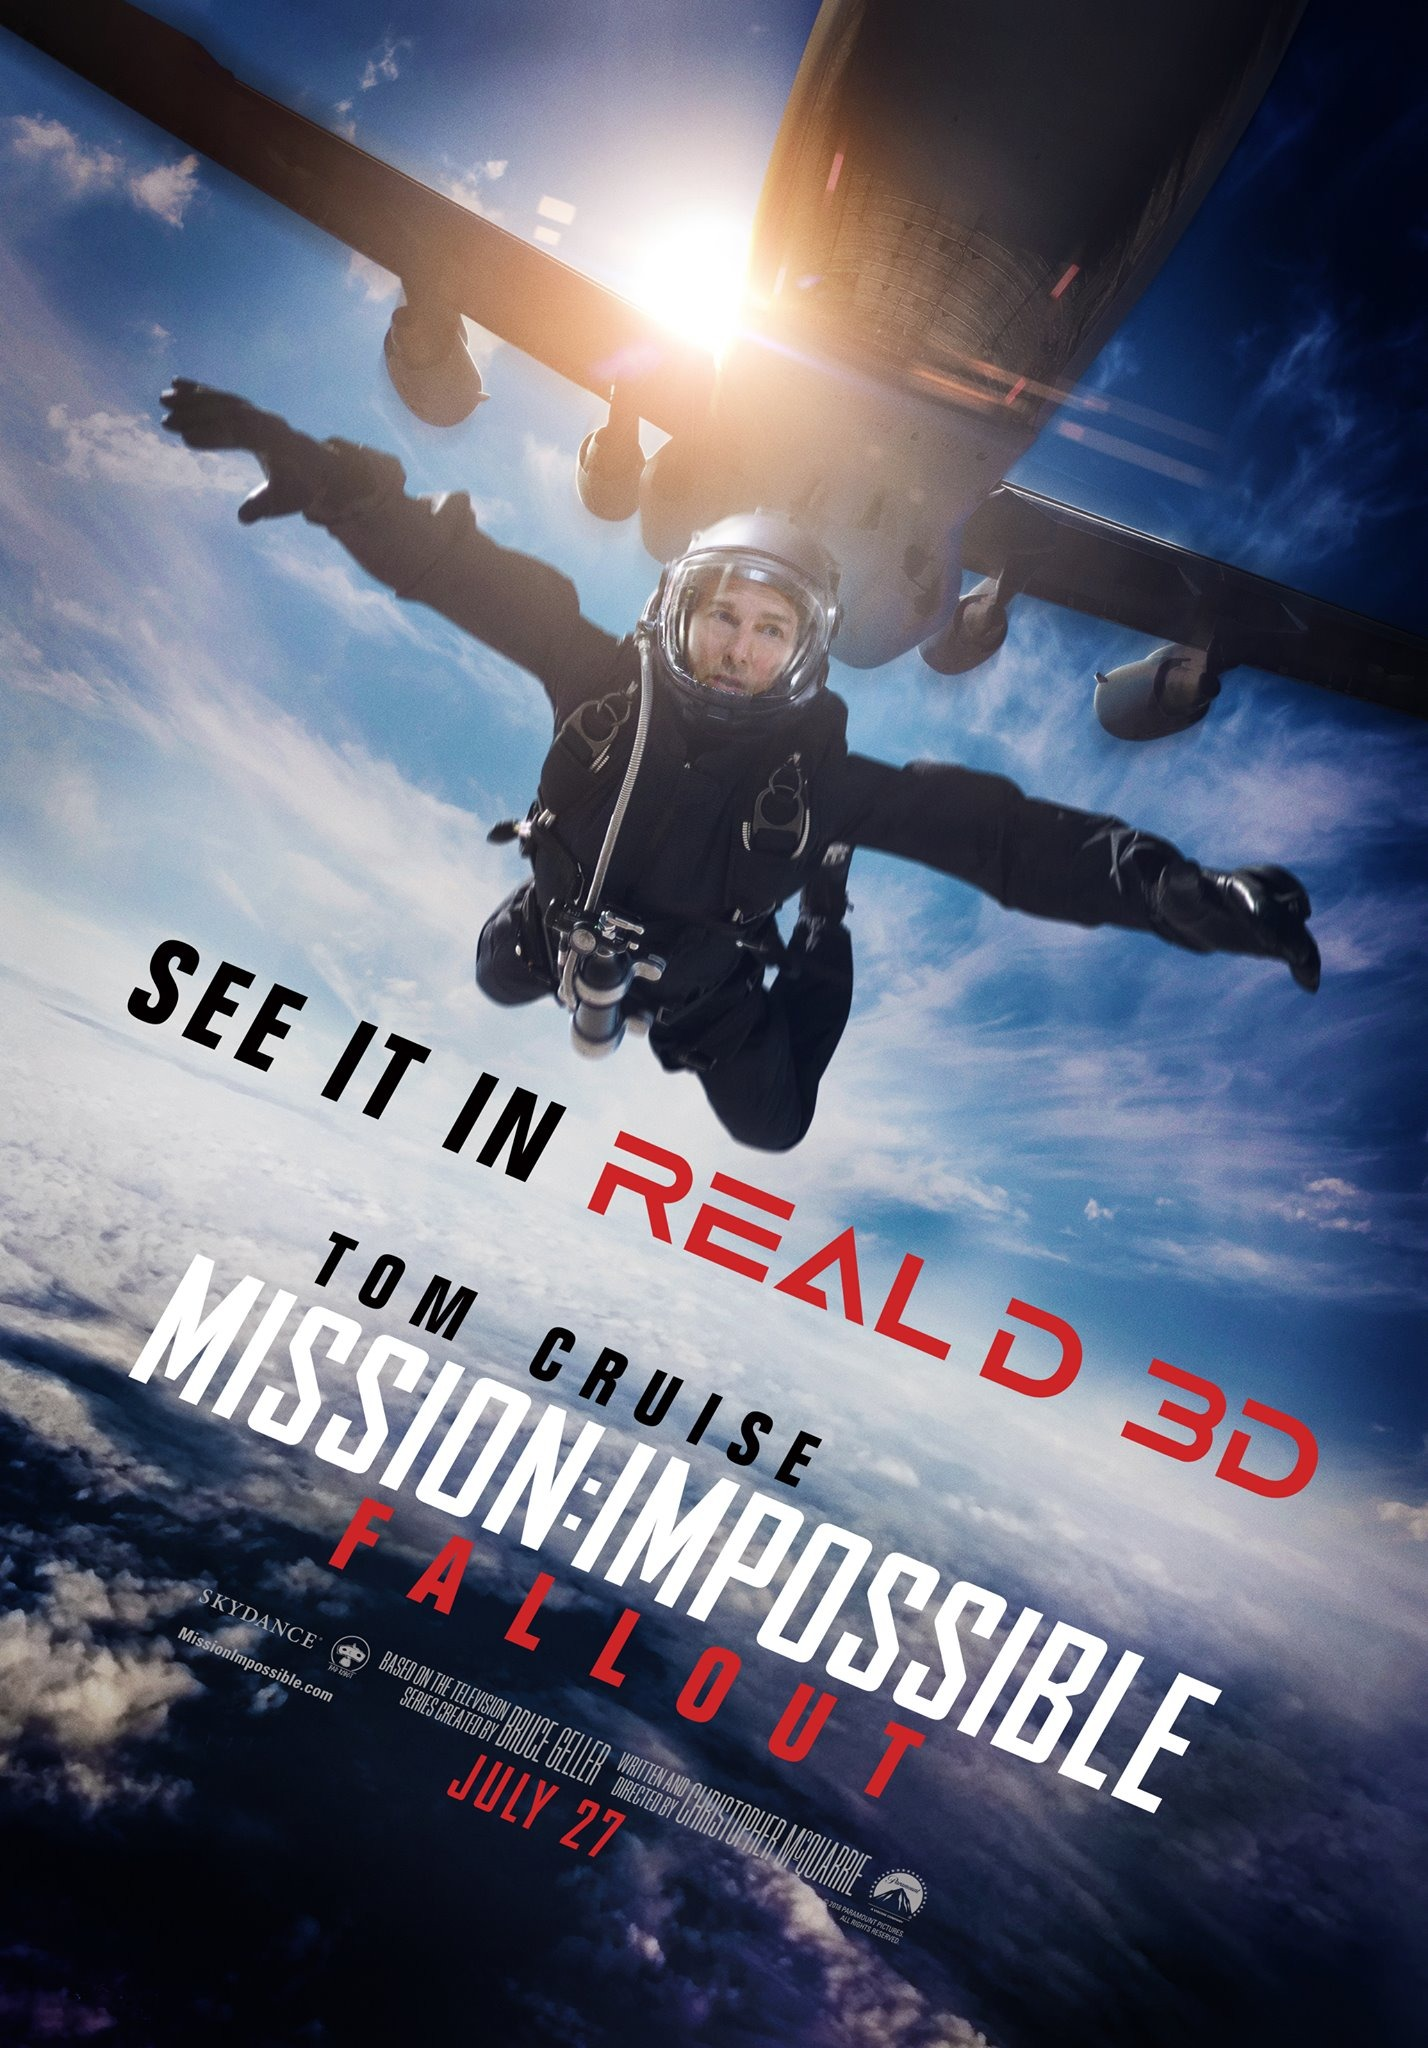 Mission Impossible Fallout poster 14.jpg